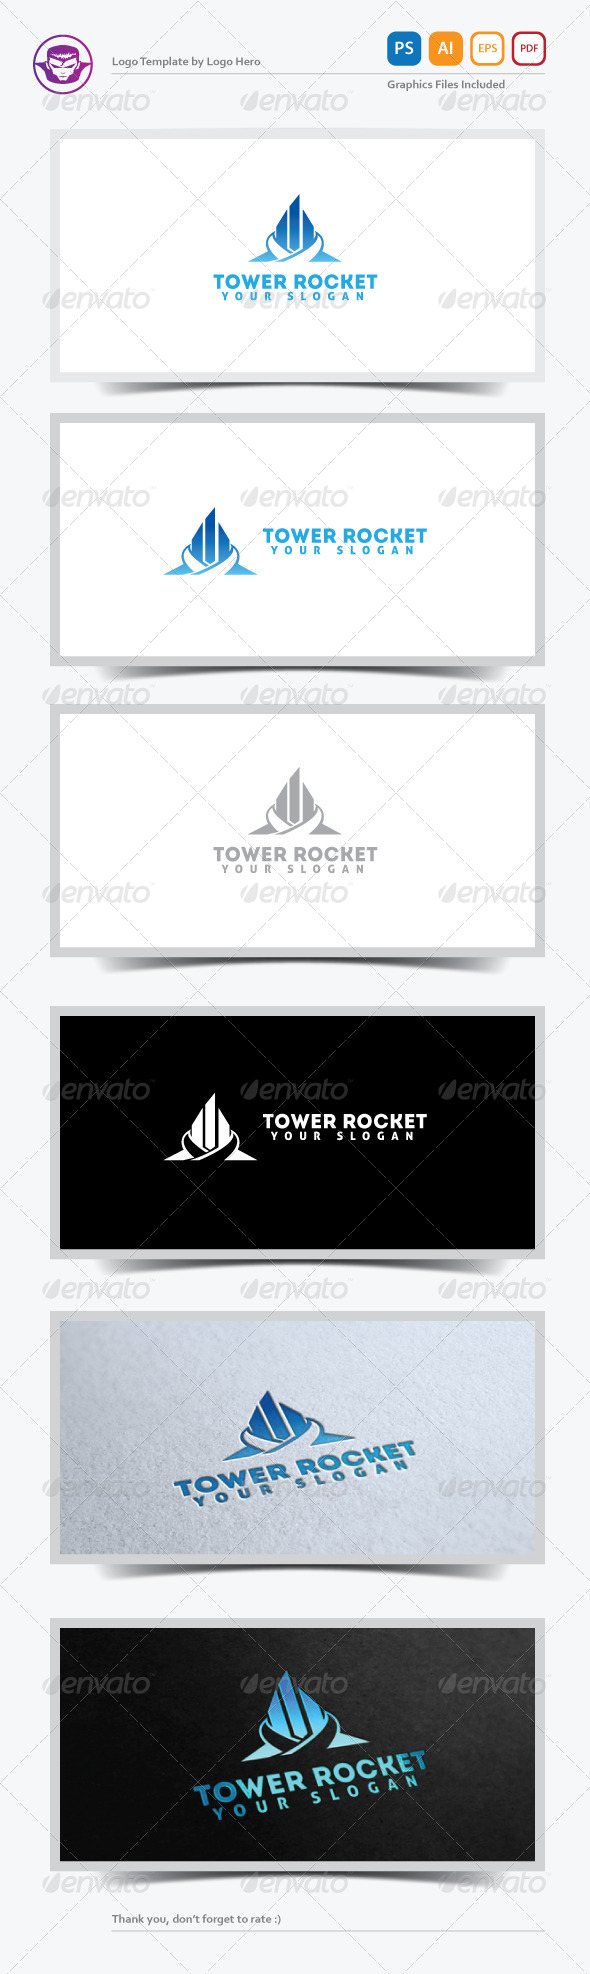 GraphicRiver Tower Rocket Logo Template 5225798